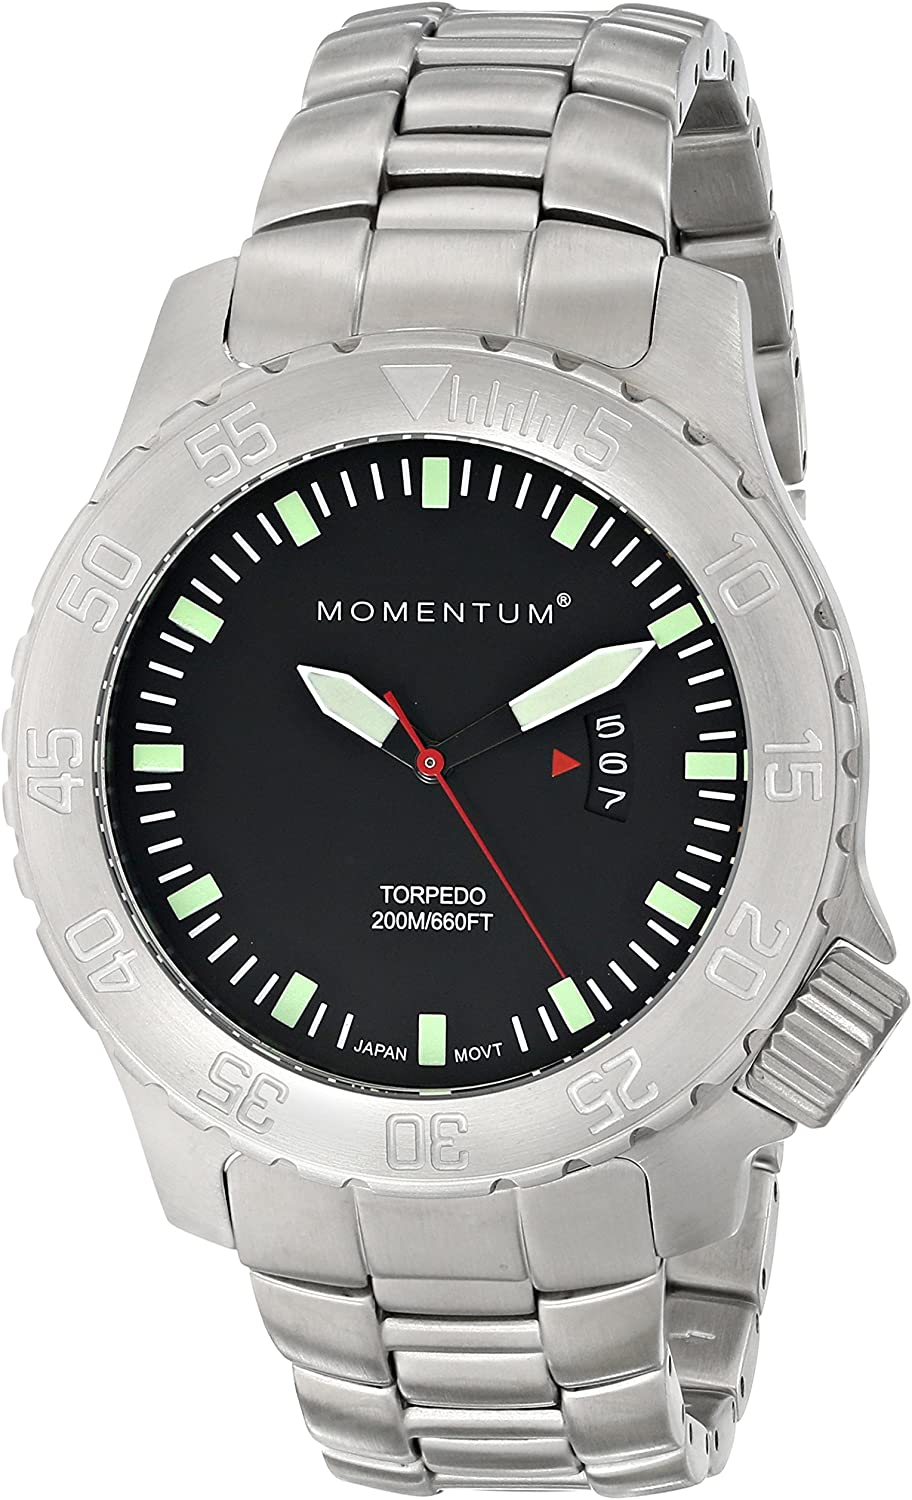 Men s Sports Watch Torpedo Dive Watch by Momentum Stainless Steel Watches for Men Analog Watch with Japanese Movement Water Resistant 200M 660FT Classic Watch – Black 1M-DV74B0